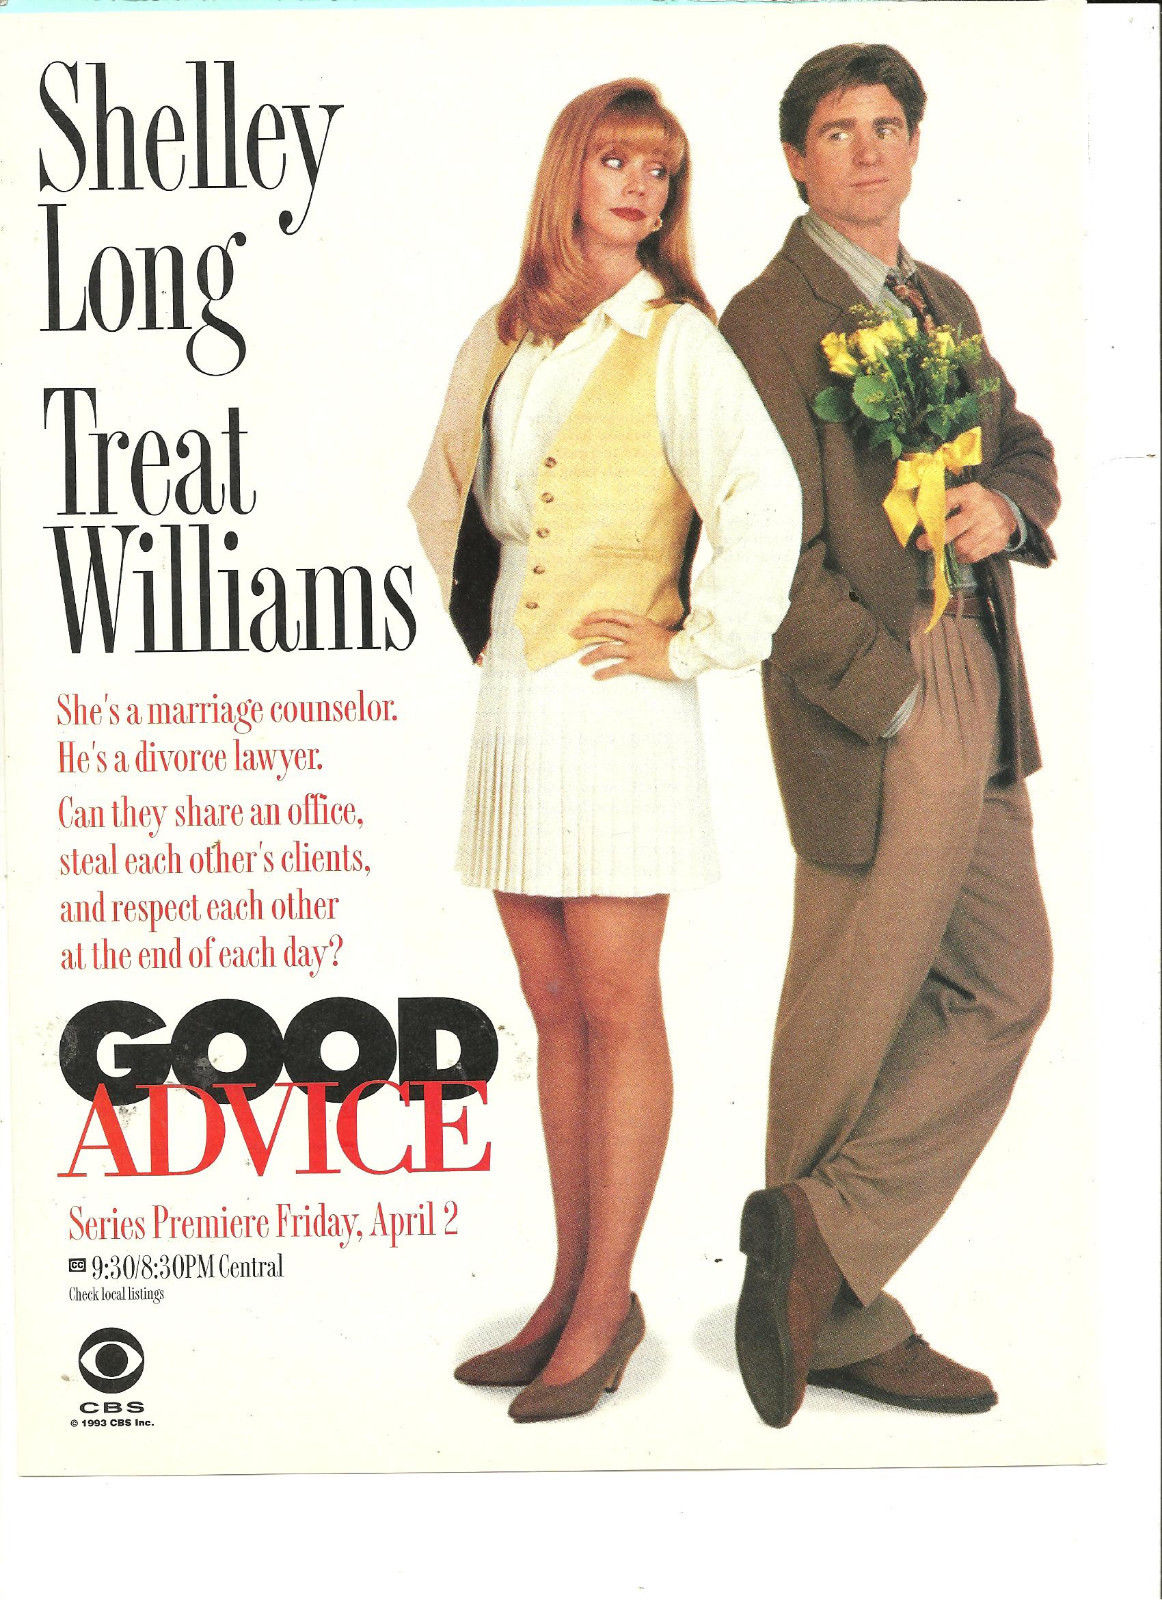 Treat_Williams_Shelley_Long_Good_Advice_Full_Page_Promotional_Ad